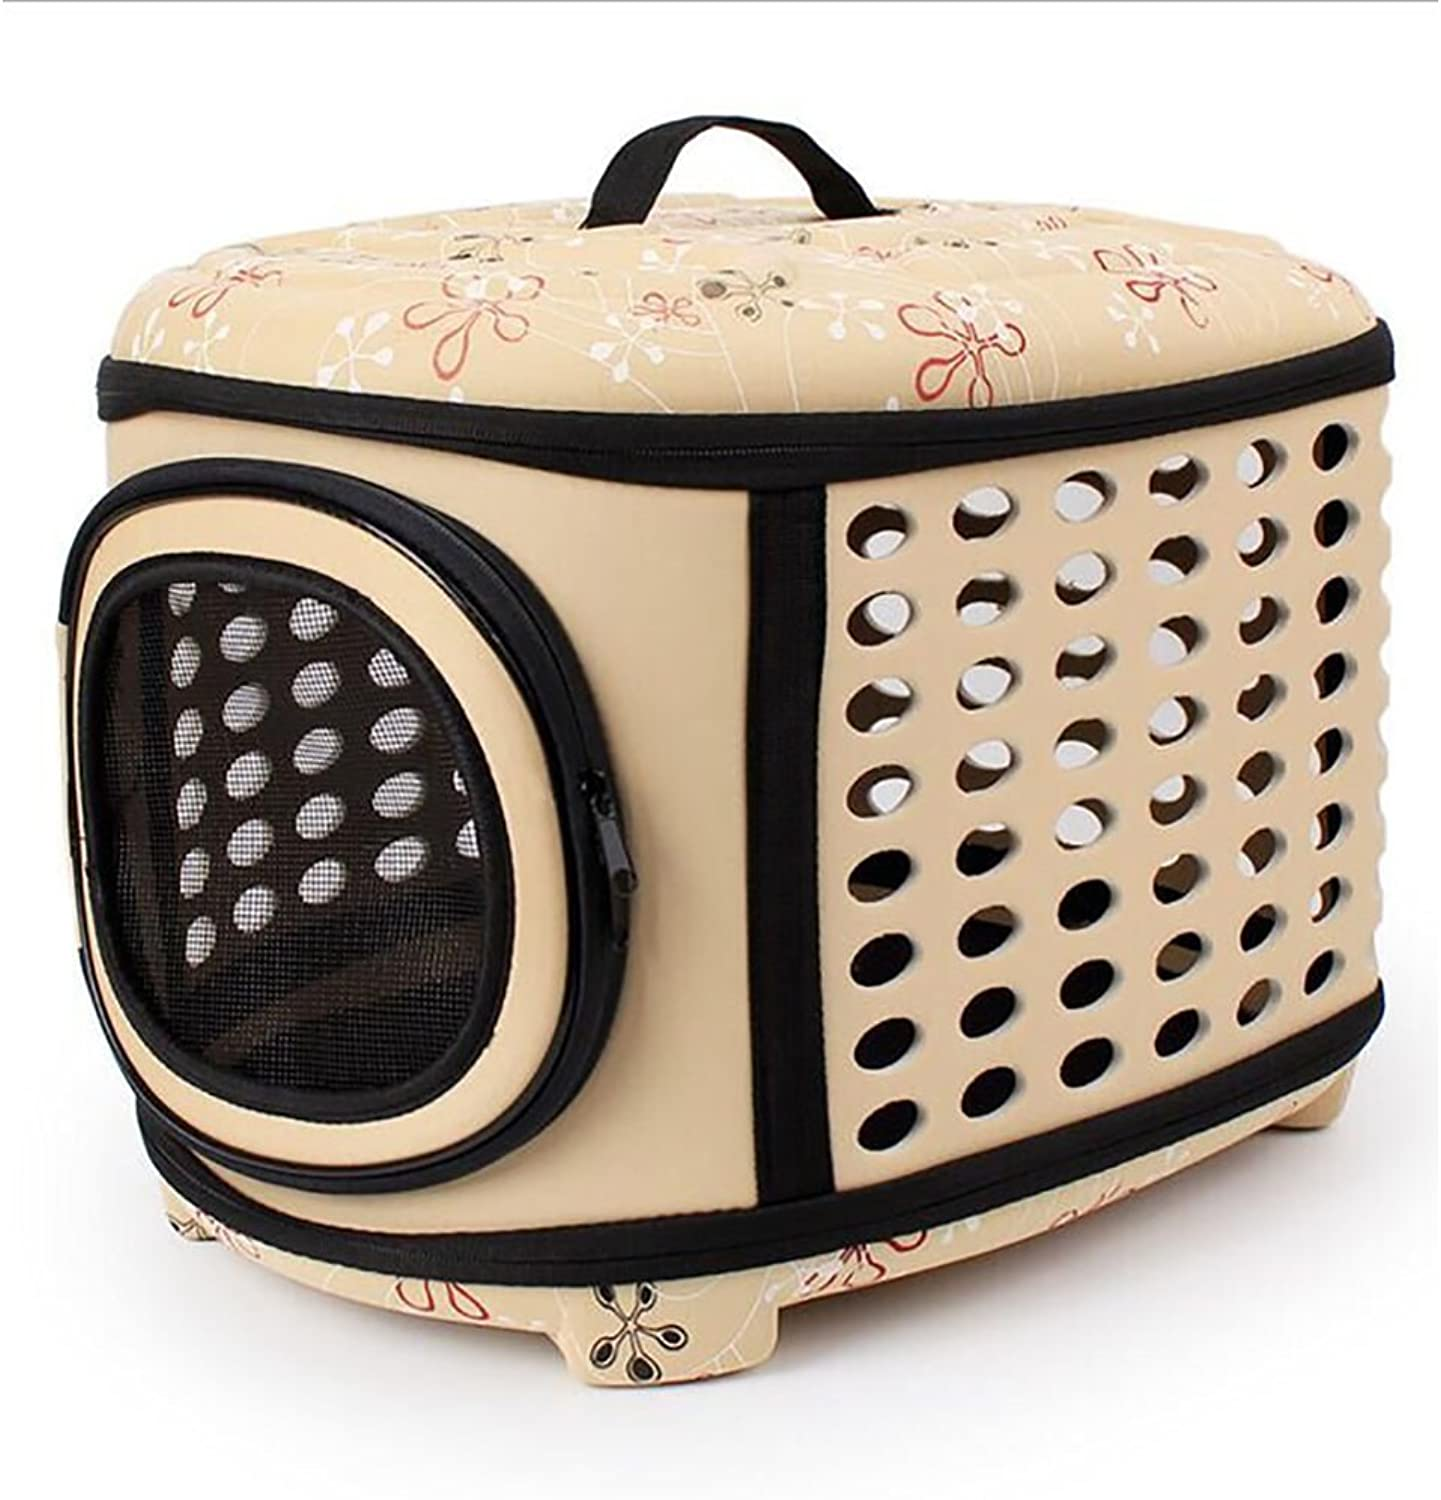 GKPLY Collapsible Pet Travel Carrier,Hard Cover And Portable Lightweight Pet Kennel,Comfortable Transporter Airline Approved Pet Crate Cage For Dogs Cats Rabbits Small Pets